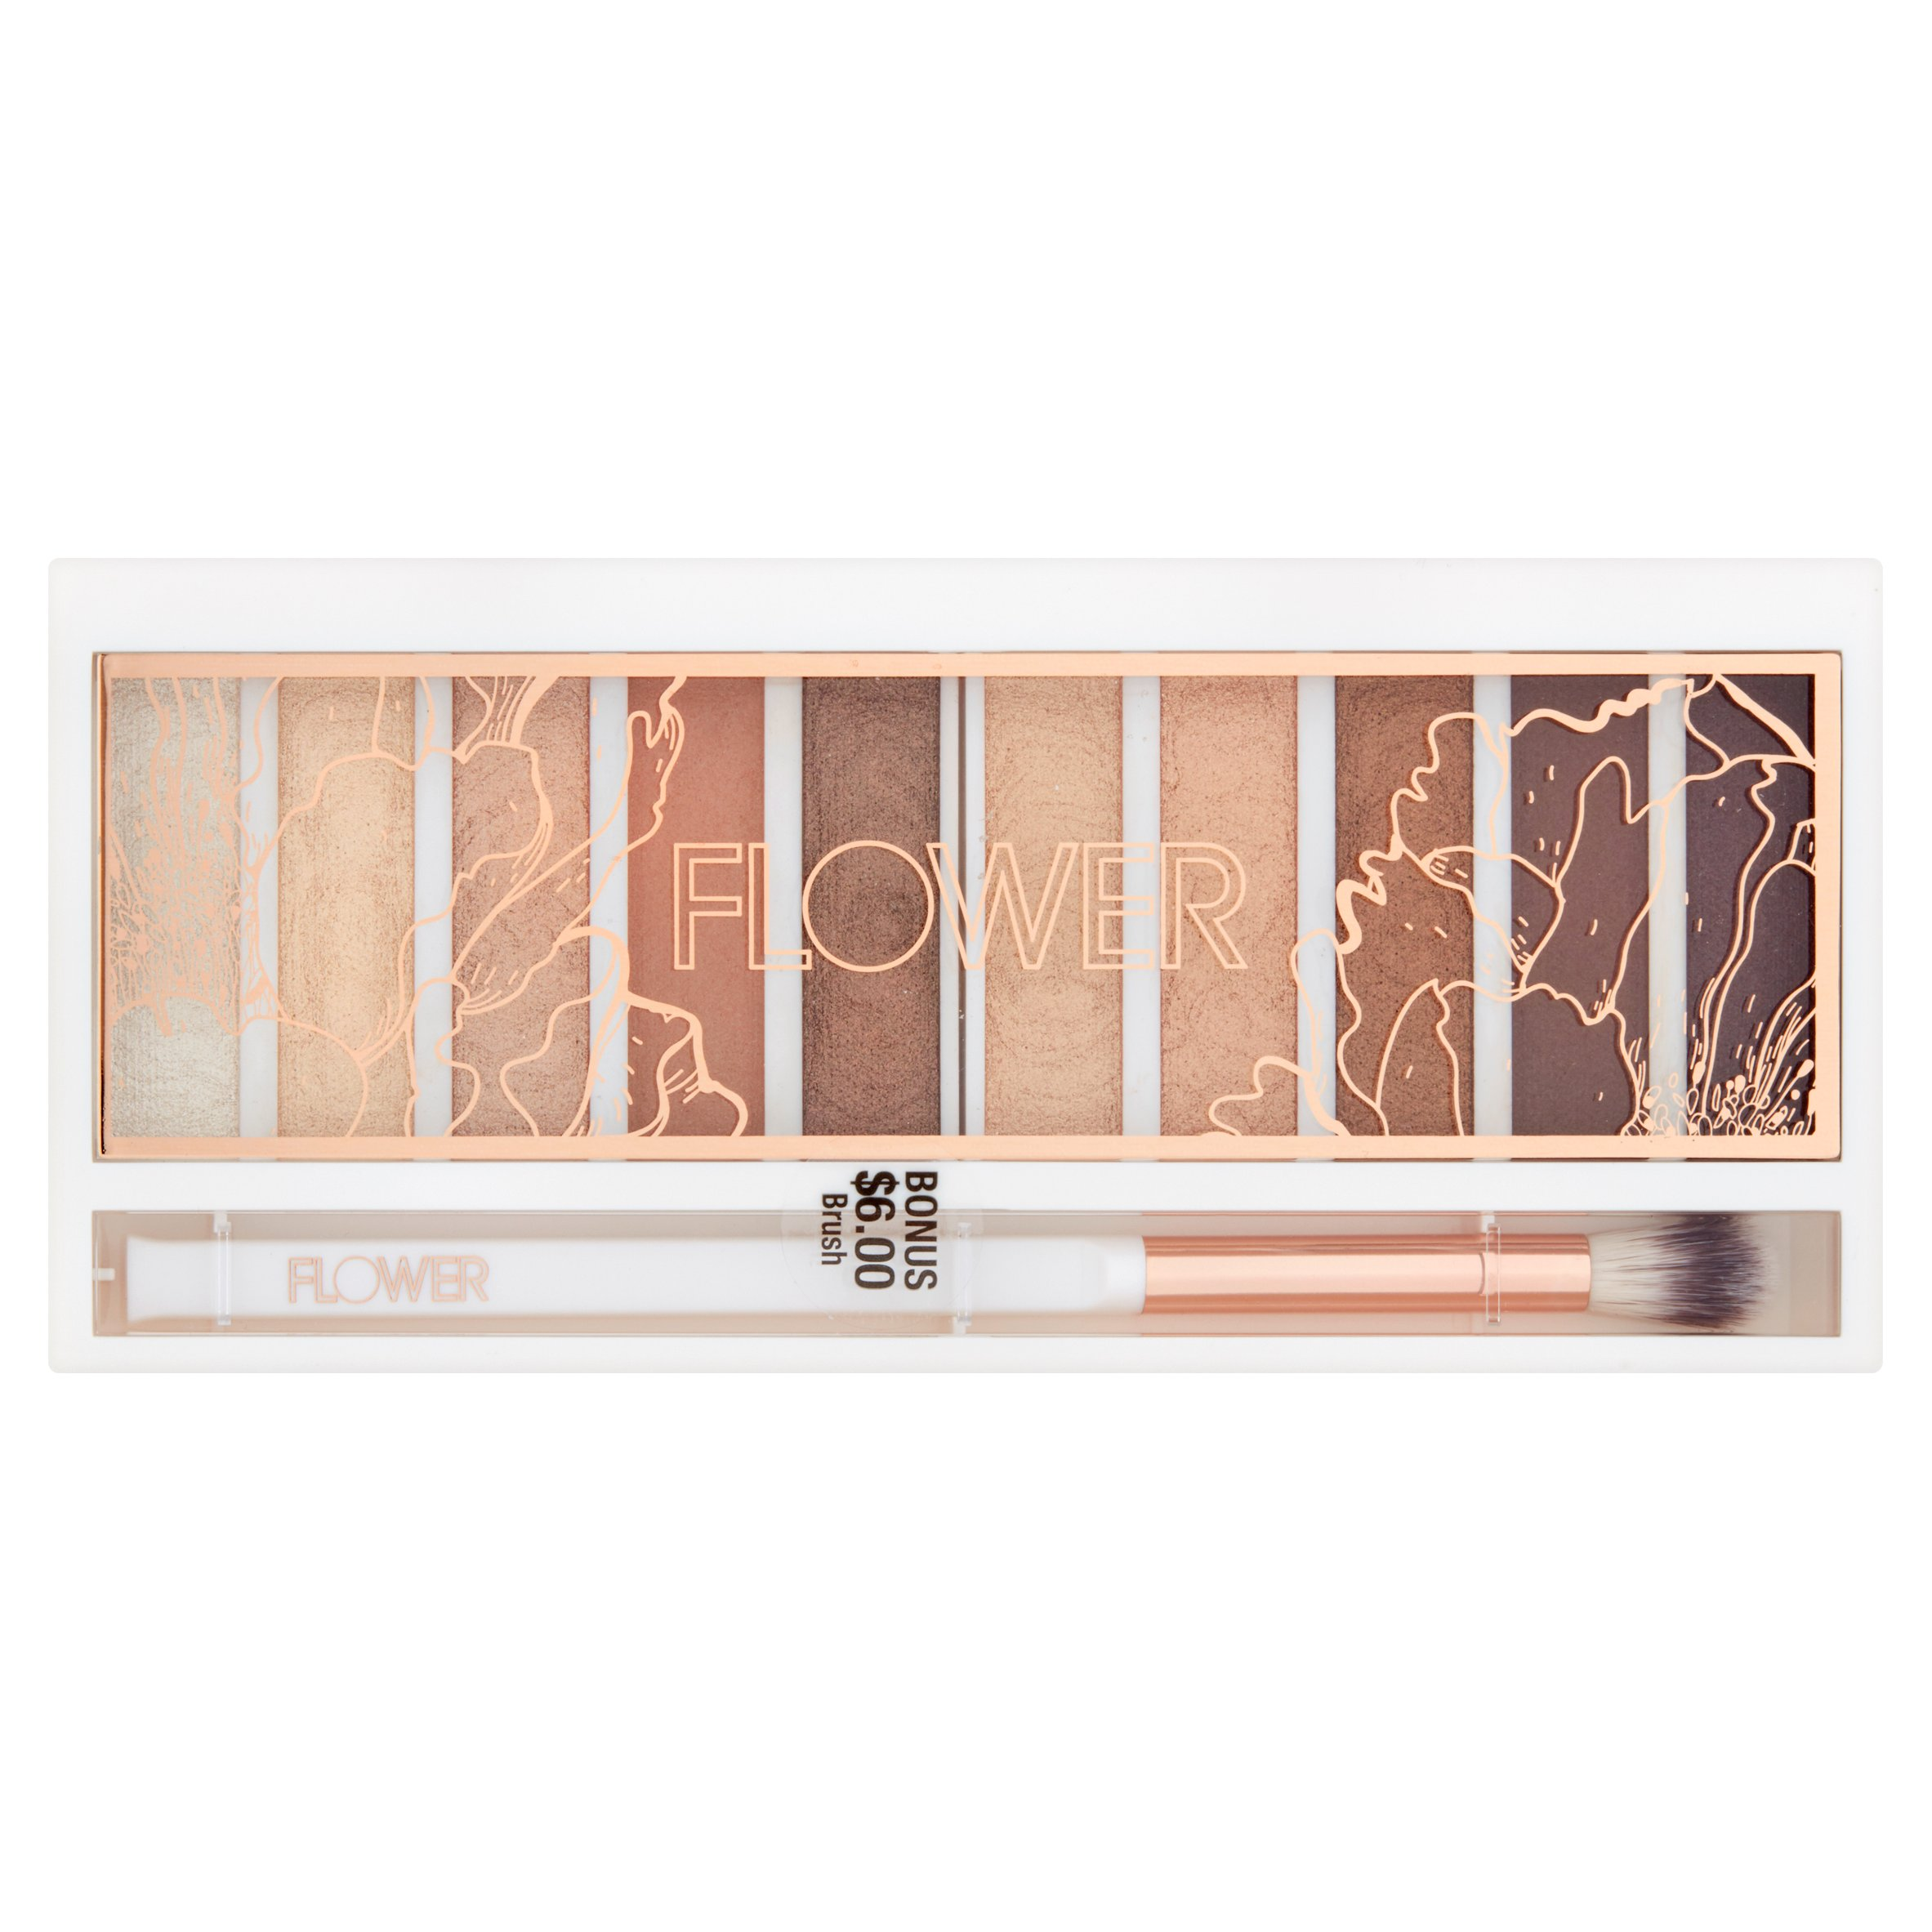 Flower Shimmer & Shade Eyeshadow Palette, ES3 Golden Natural